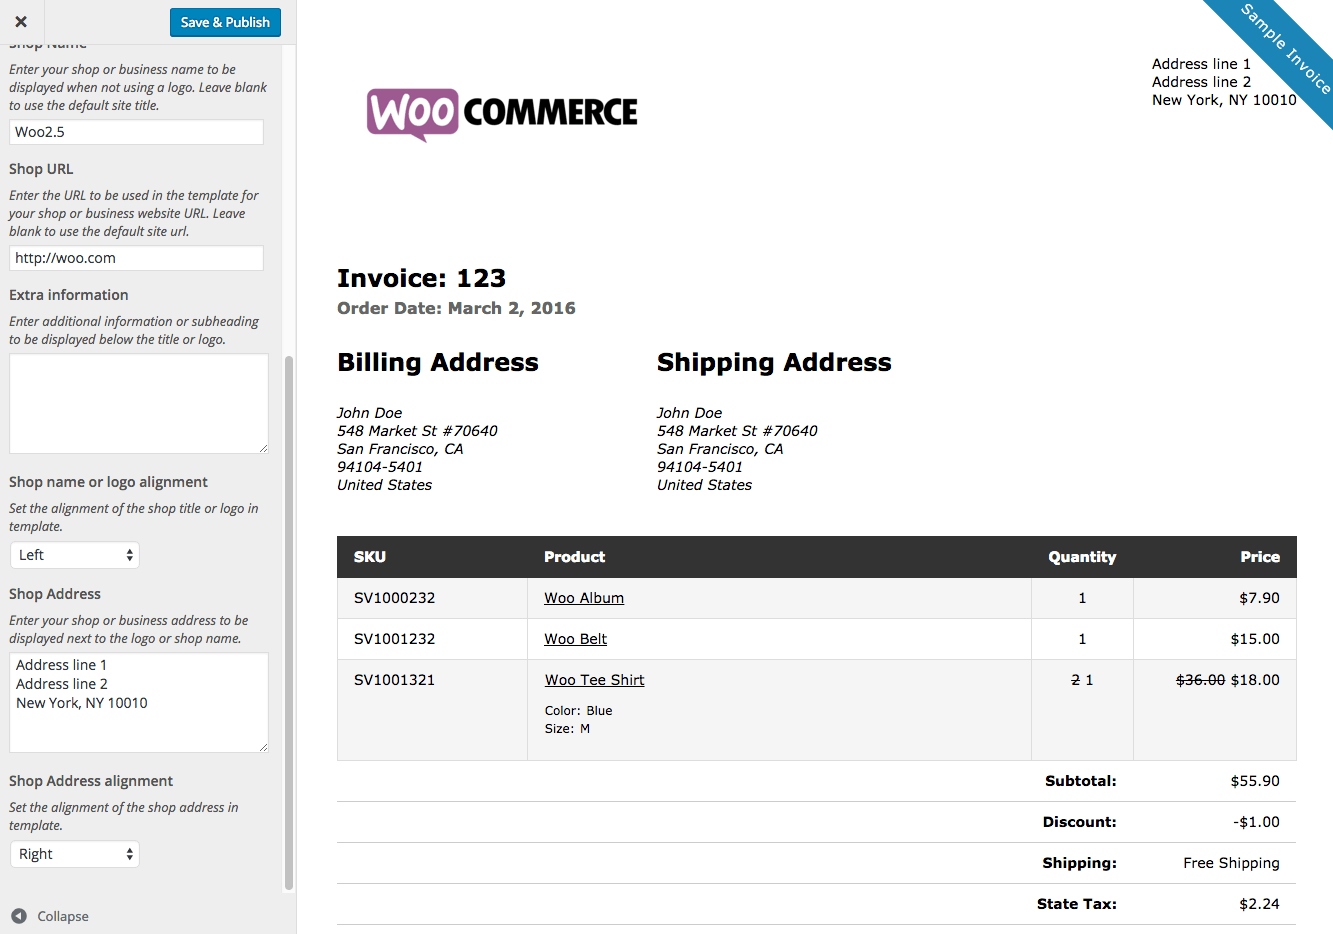 Carsforlessus  Surprising Woocommerce Print Invoices Amp Packing Lists  Woocommerce Docs With Engaging Woocommerce Print Invoices  Packing Lists Customizer With Easy On The Eye Invoice Terms Of Payment Also Invoice Pro Forma In Addition Invoice Cost For New Cars And Service Invoice Format As Well As Service Tax Invoice Format Additionally Invoice Is From Docswoocommercecom With Carsforlessus  Engaging Woocommerce Print Invoices Amp Packing Lists  Woocommerce Docs With Easy On The Eye Woocommerce Print Invoices  Packing Lists Customizer And Surprising Invoice Terms Of Payment Also Invoice Pro Forma In Addition Invoice Cost For New Cars From Docswoocommercecom